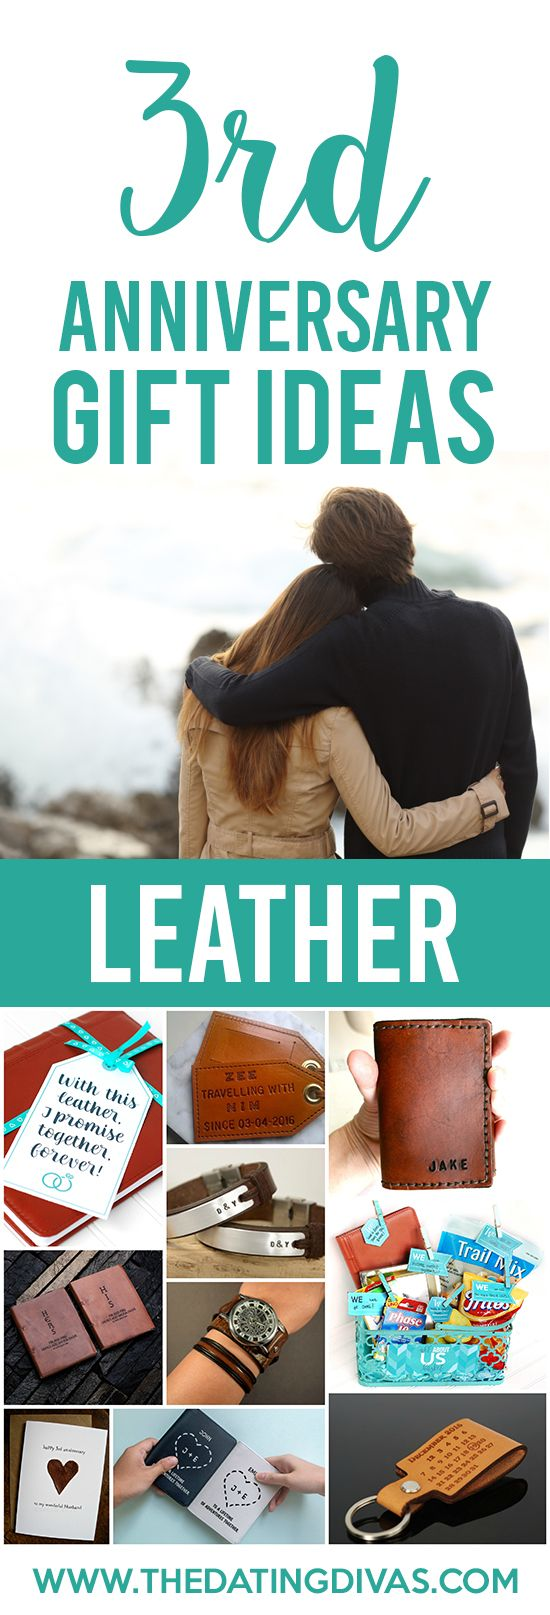 3rd Anniversary Gift Ideas for your Leather anniversary!